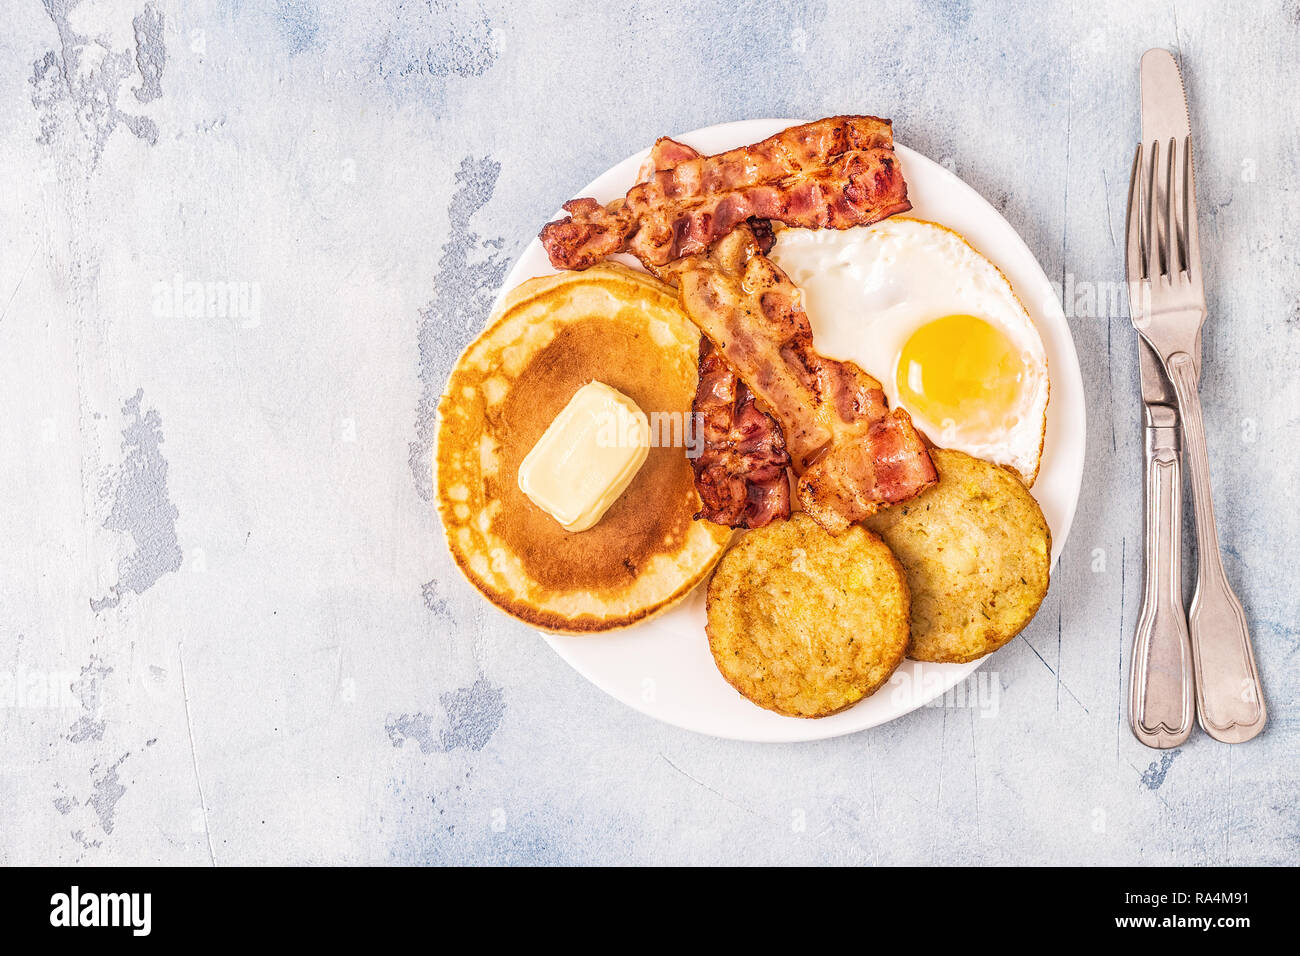 Healthy Full American Breakfast with Eggs Bacon Pancakes and Latkes, top view. - Stock Image